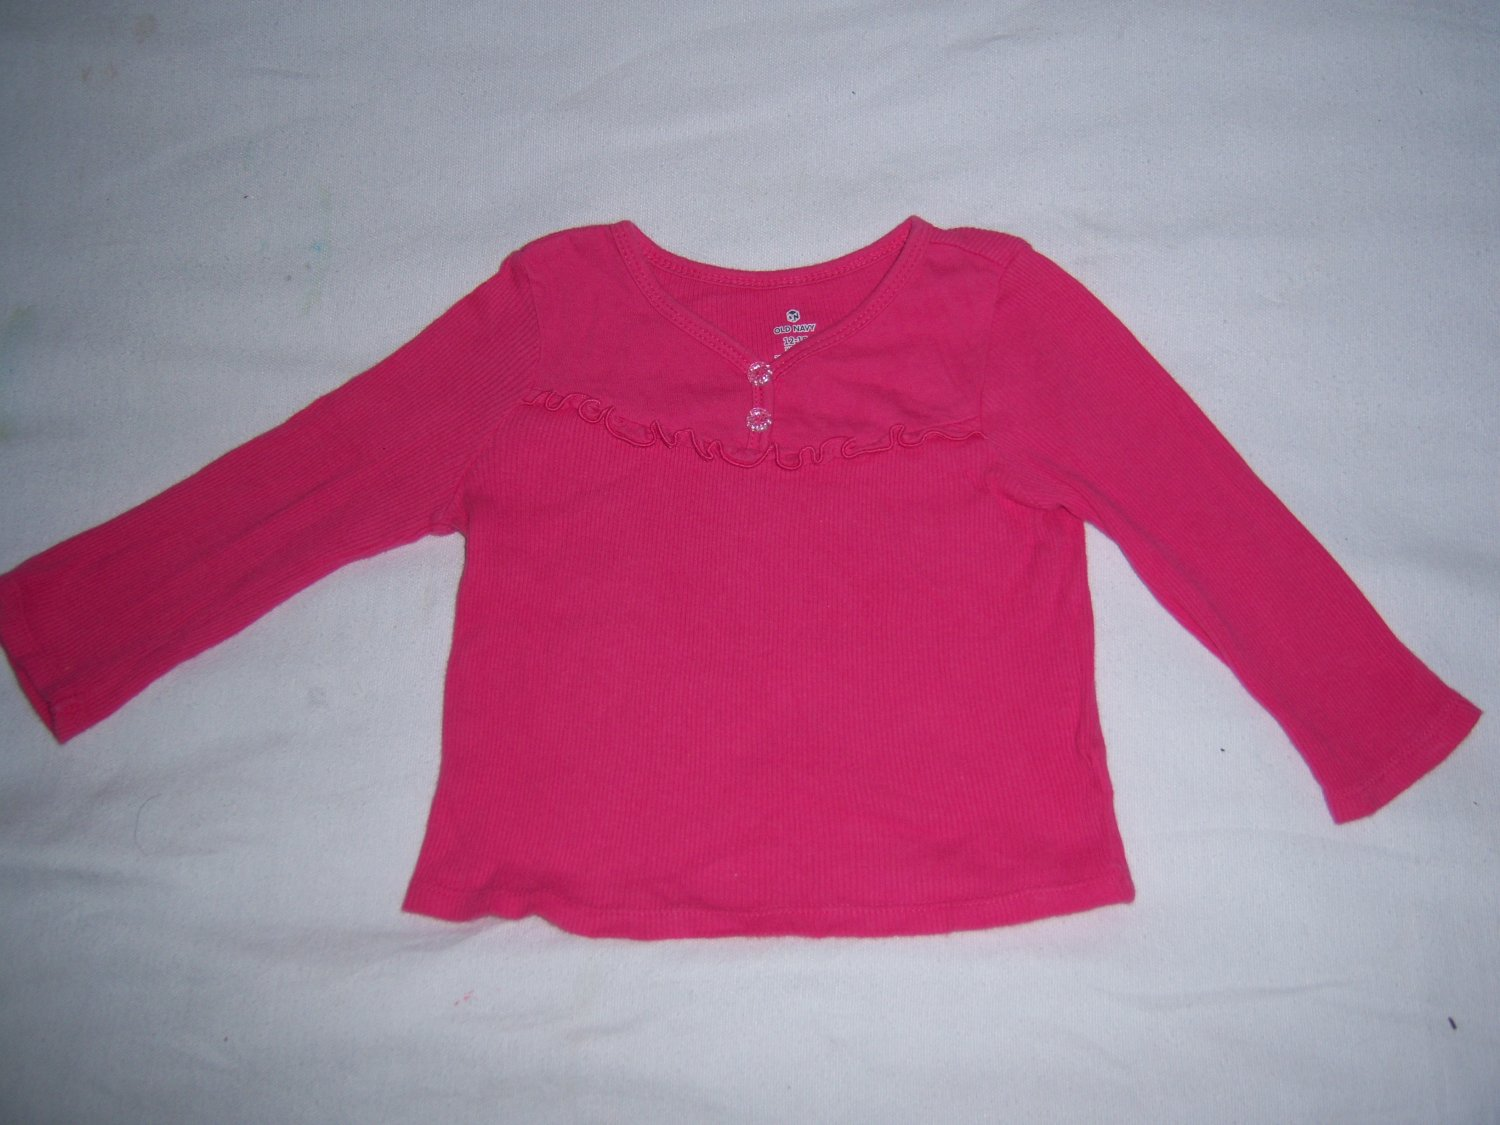 OLD NAVY INFANT BABY GIRLS PINK LONG SLEEVE TOP 12-18 M